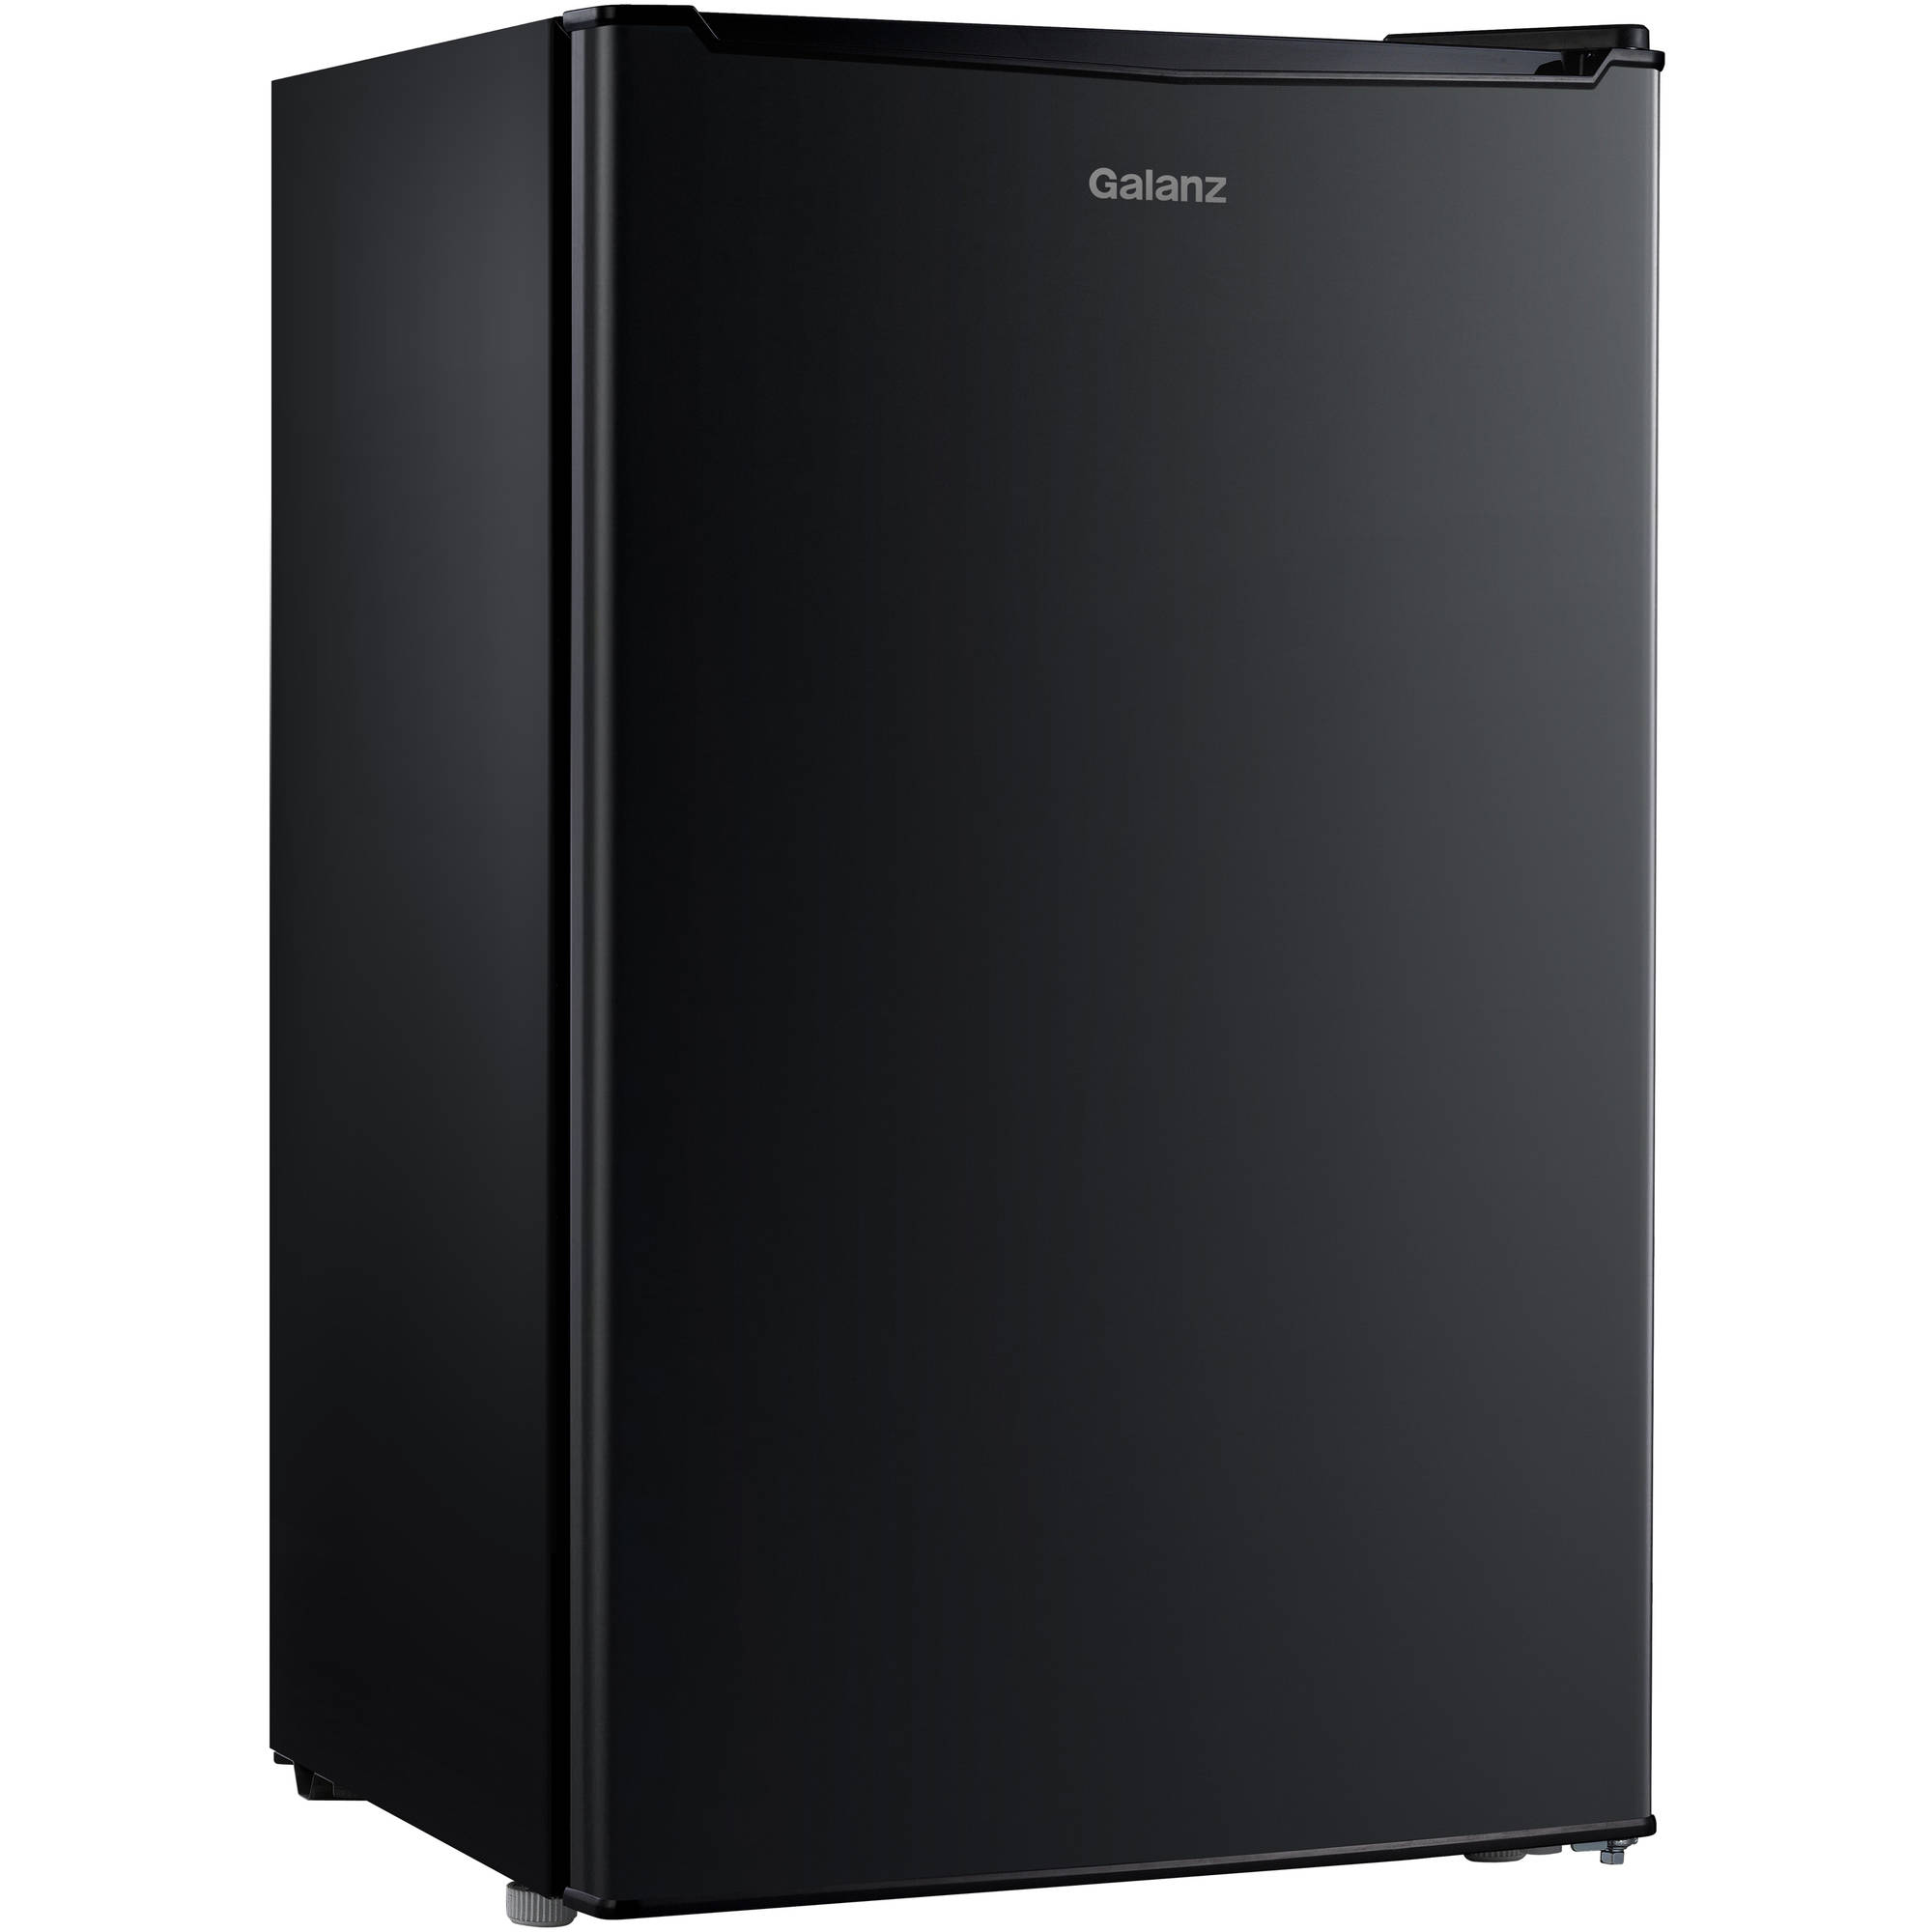 Galanz 3.5 Cu Ft Compact Single Door Refrigerator, Black